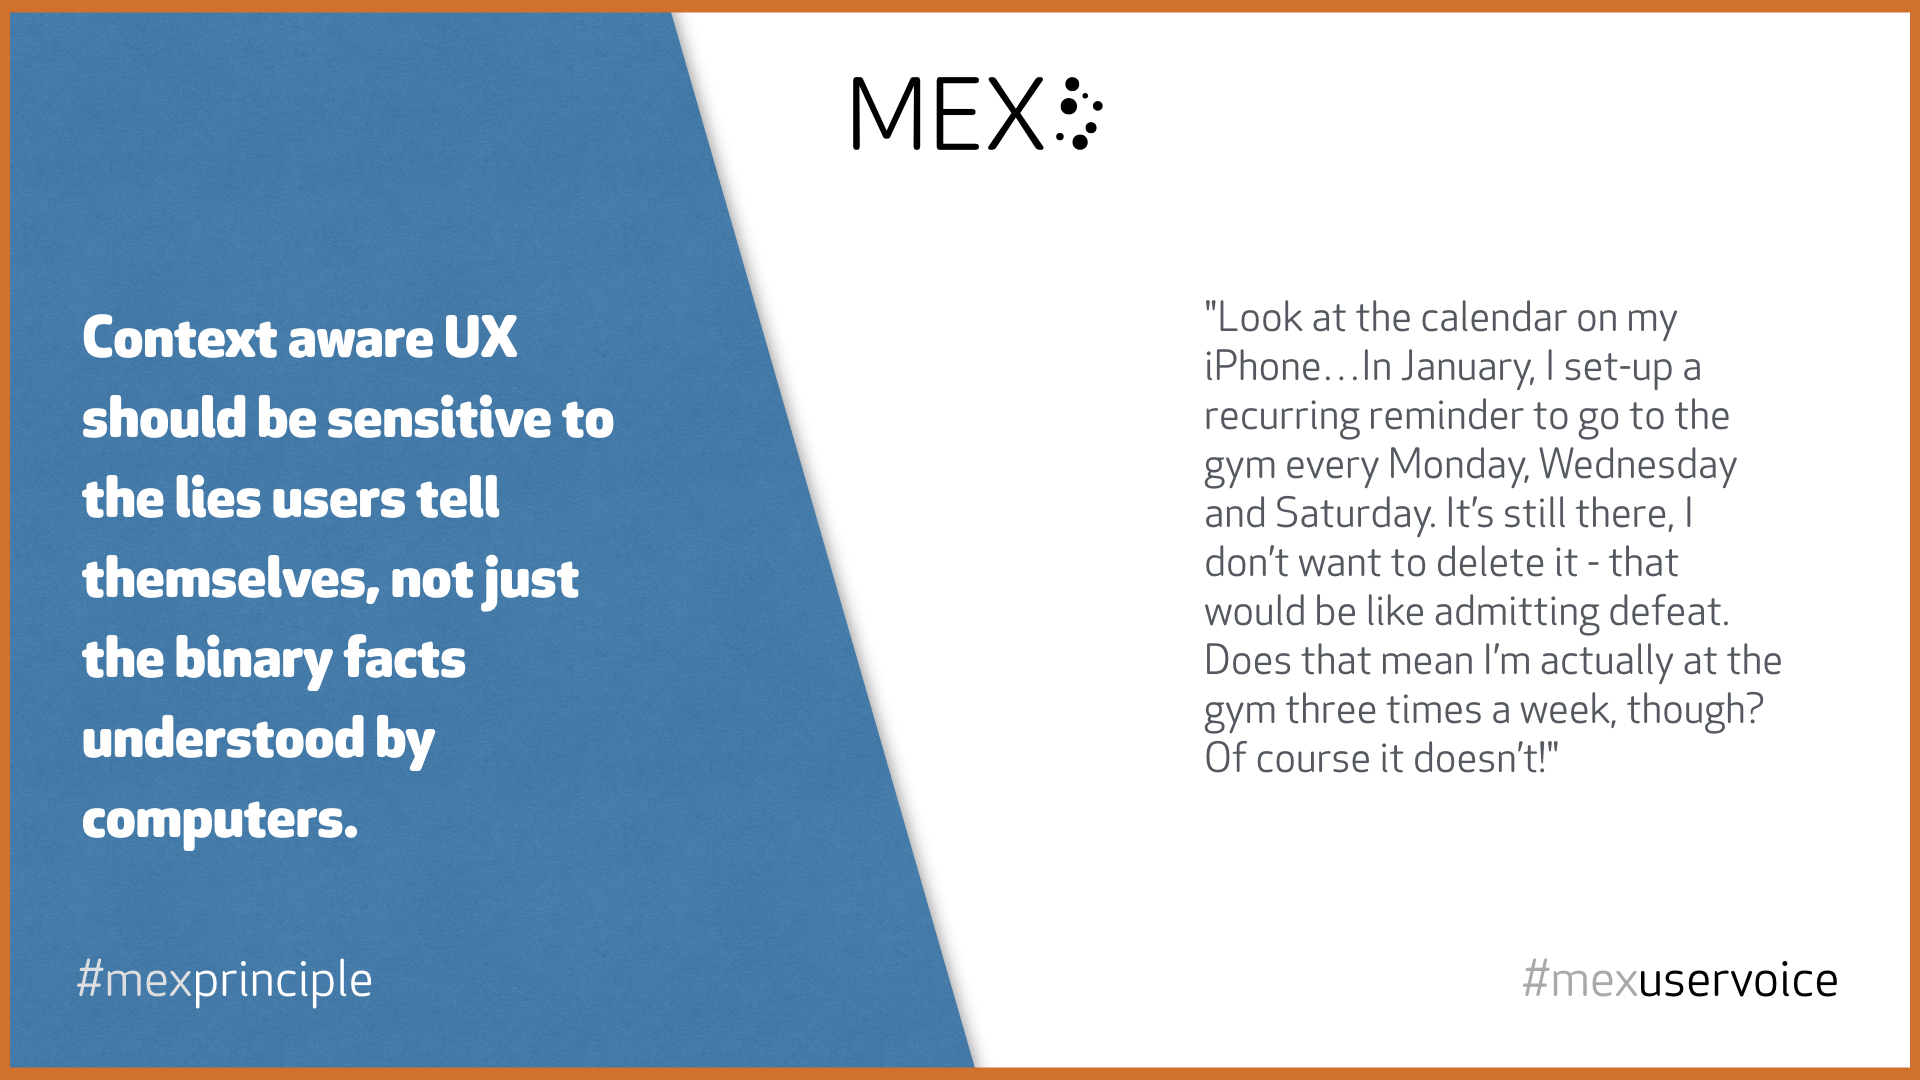 Context aware UX should be sensitive to the lies users tell themselves, not just the binary facts understood by computers. #mexprinciple